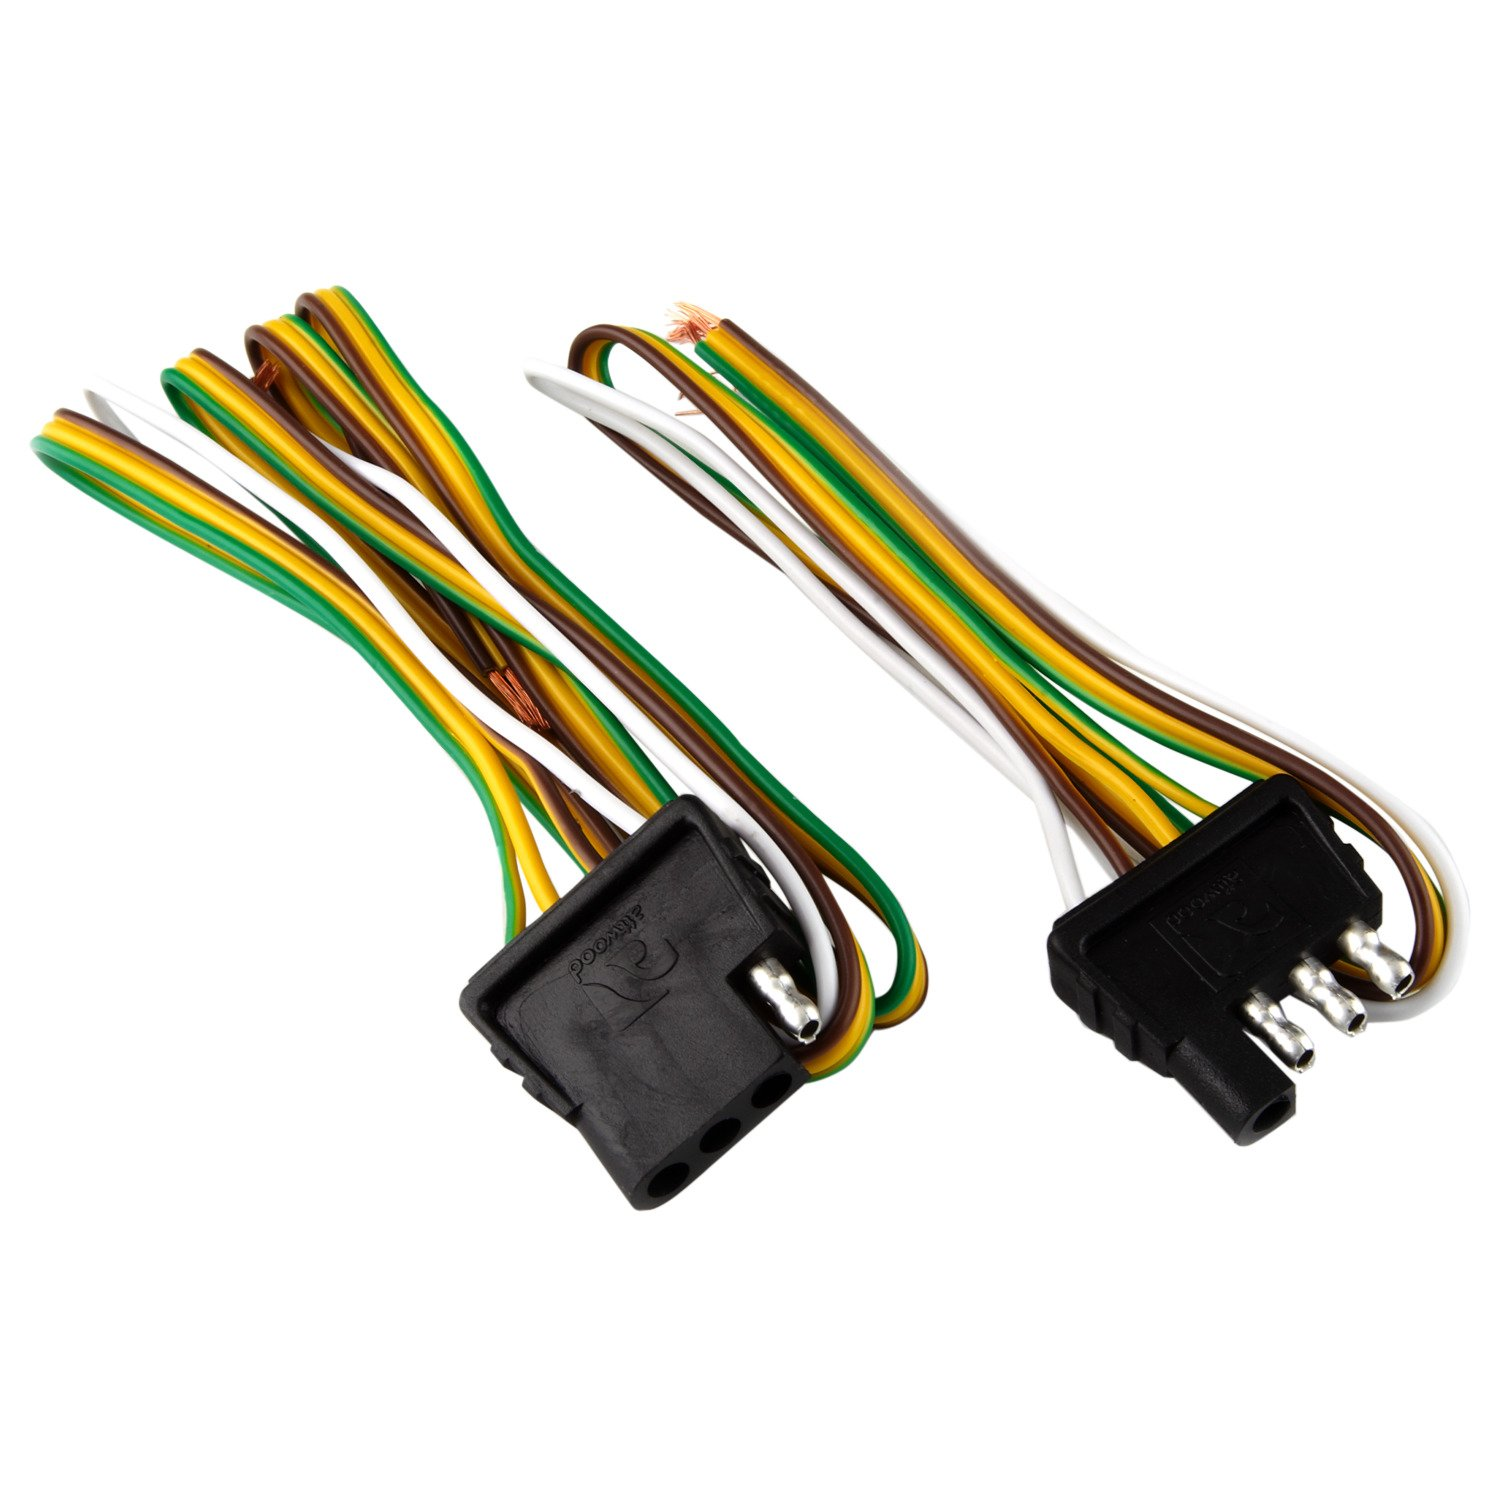 small resolution of attwood 4 way flat wiring harness kit for vehicles and trailers 4 way flat connector for ford 4 way wiring harness